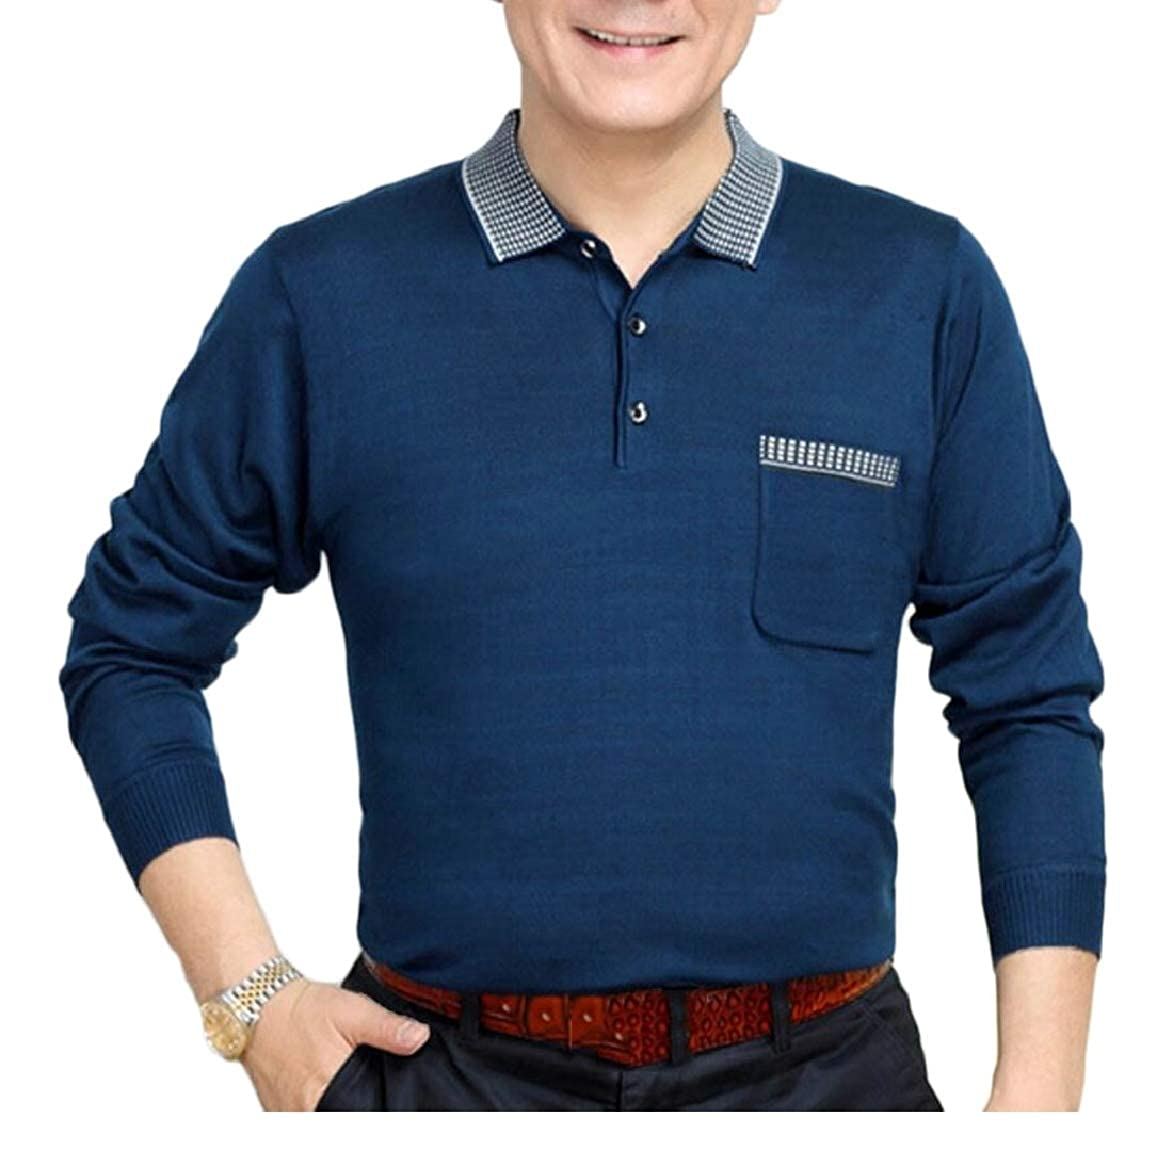 Smeiling Mens Business Polo Shirt Long Sleeved Knit Autumn Slim Fit